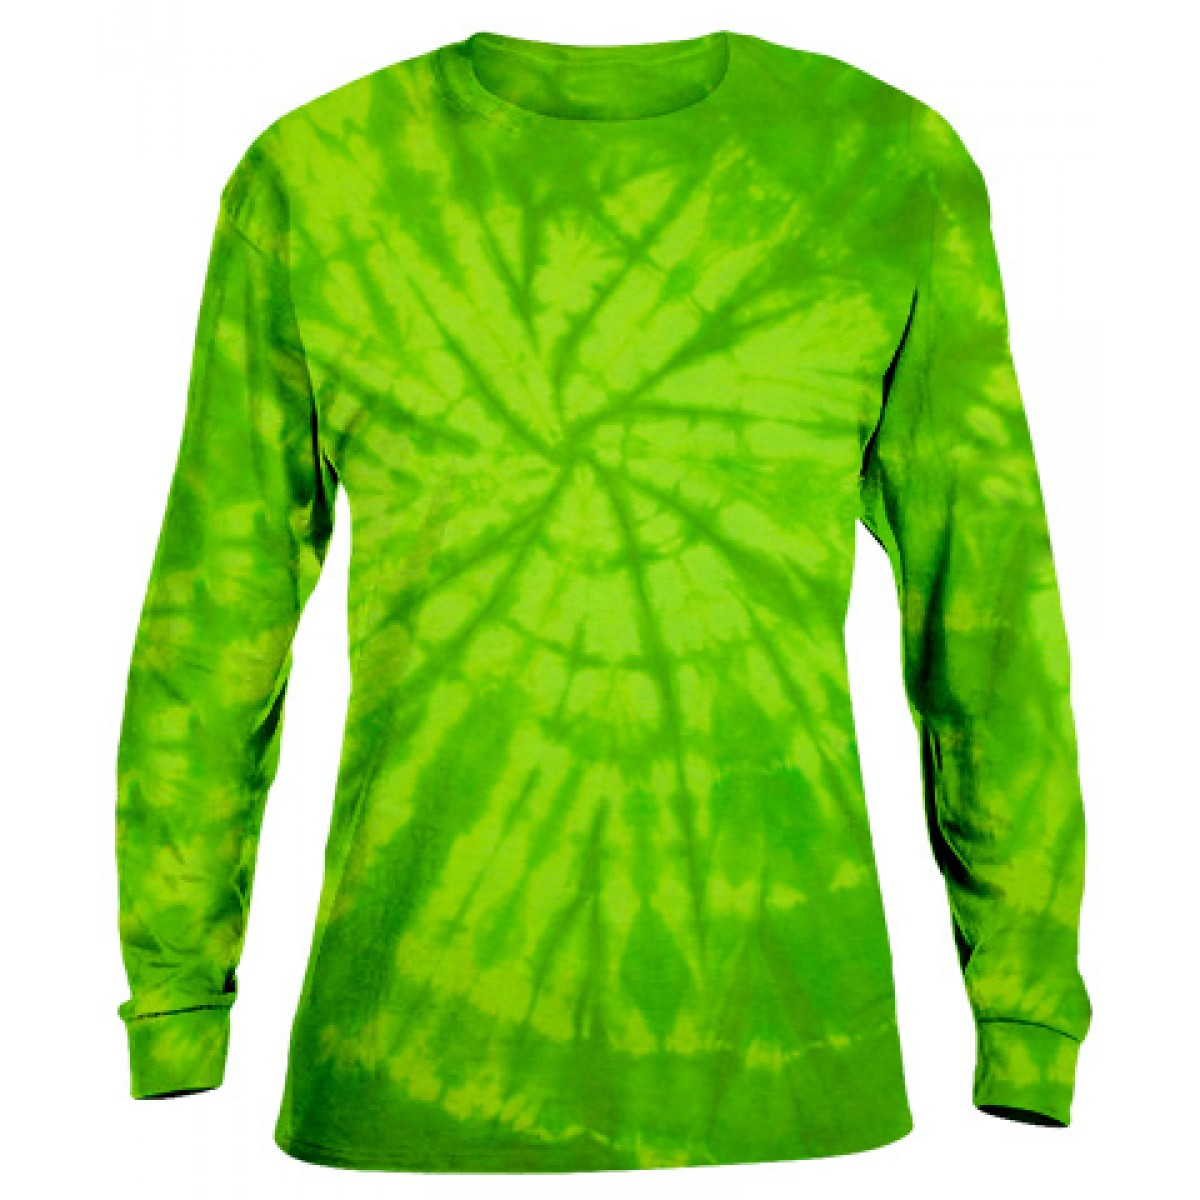 Tie-Dye Long Sleeve Shirt -Lime Green-YM